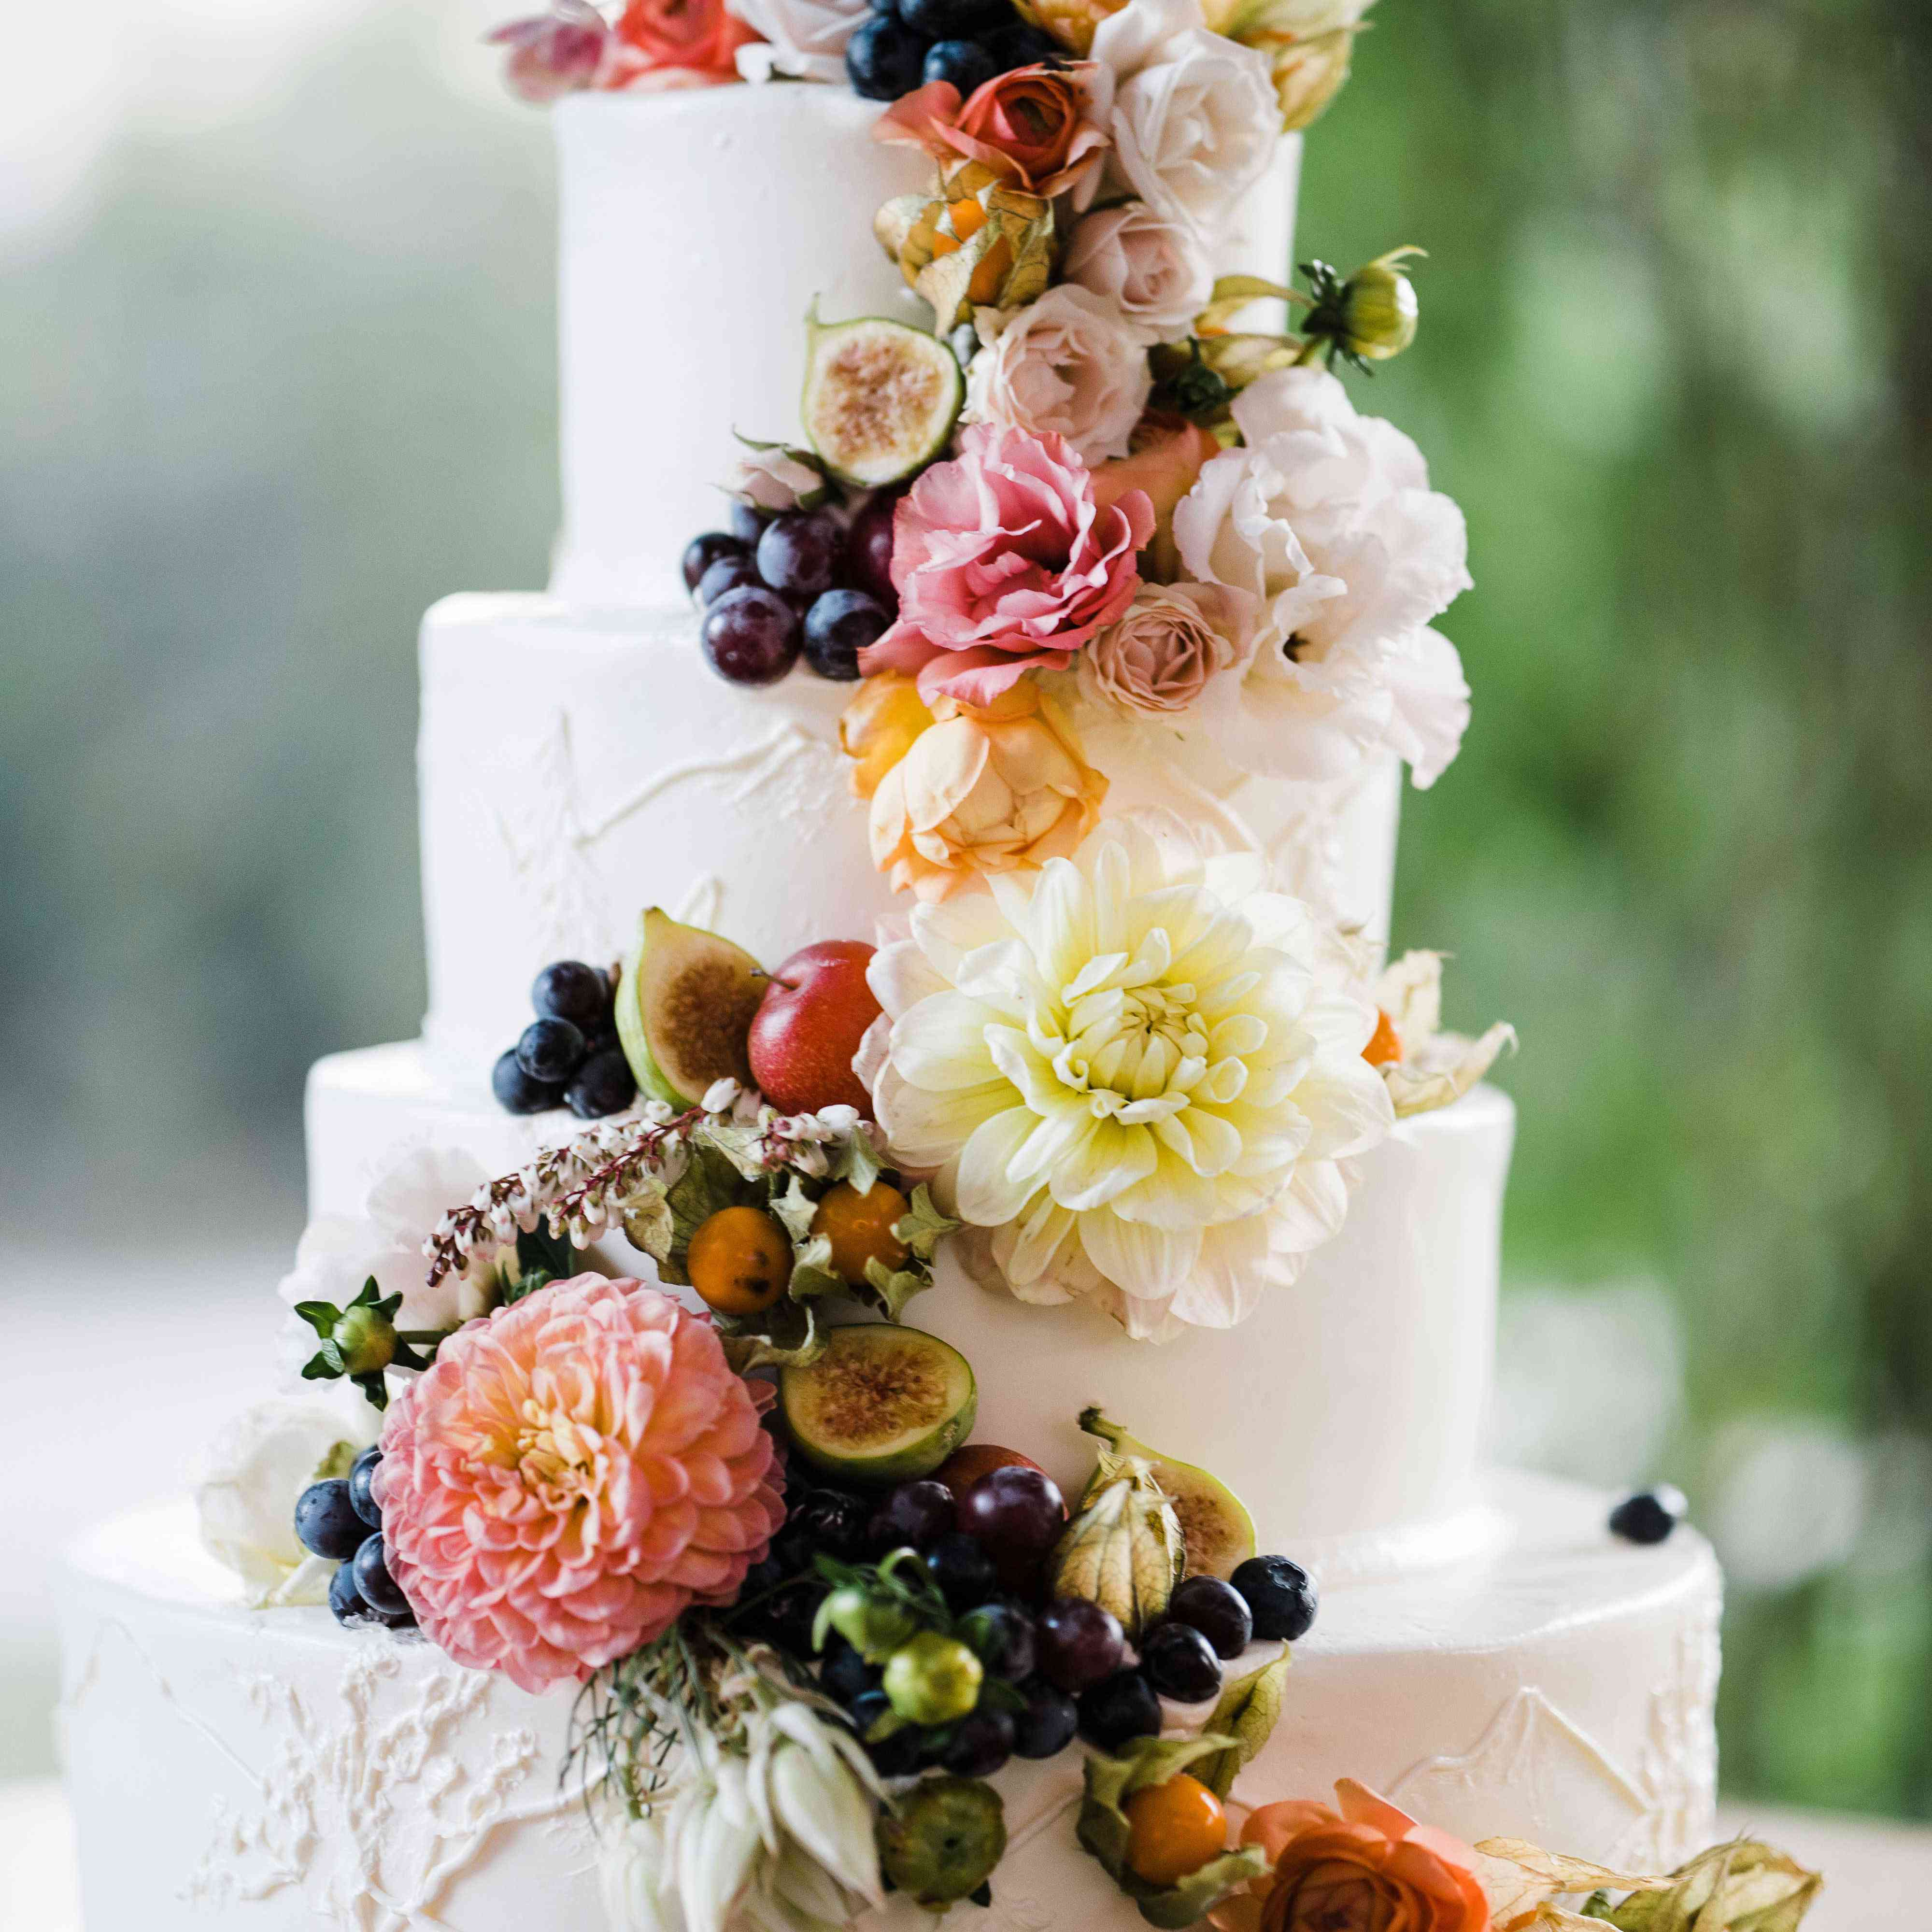 White tiered wedding cake with fruit and bright floral accents